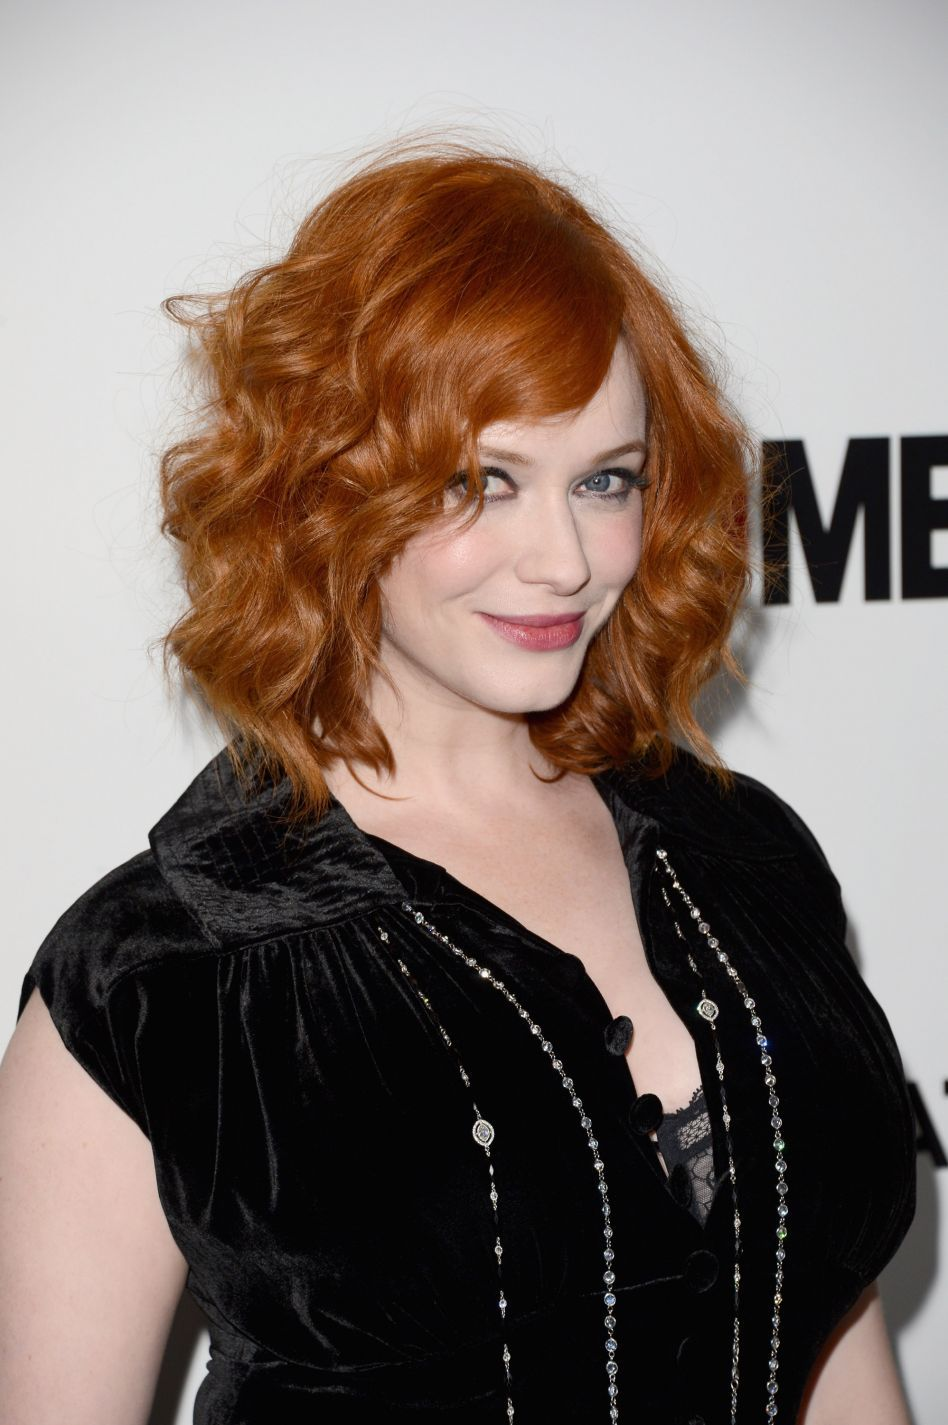 Christina Hendricks at Mad Men Season 6 premiere in Los